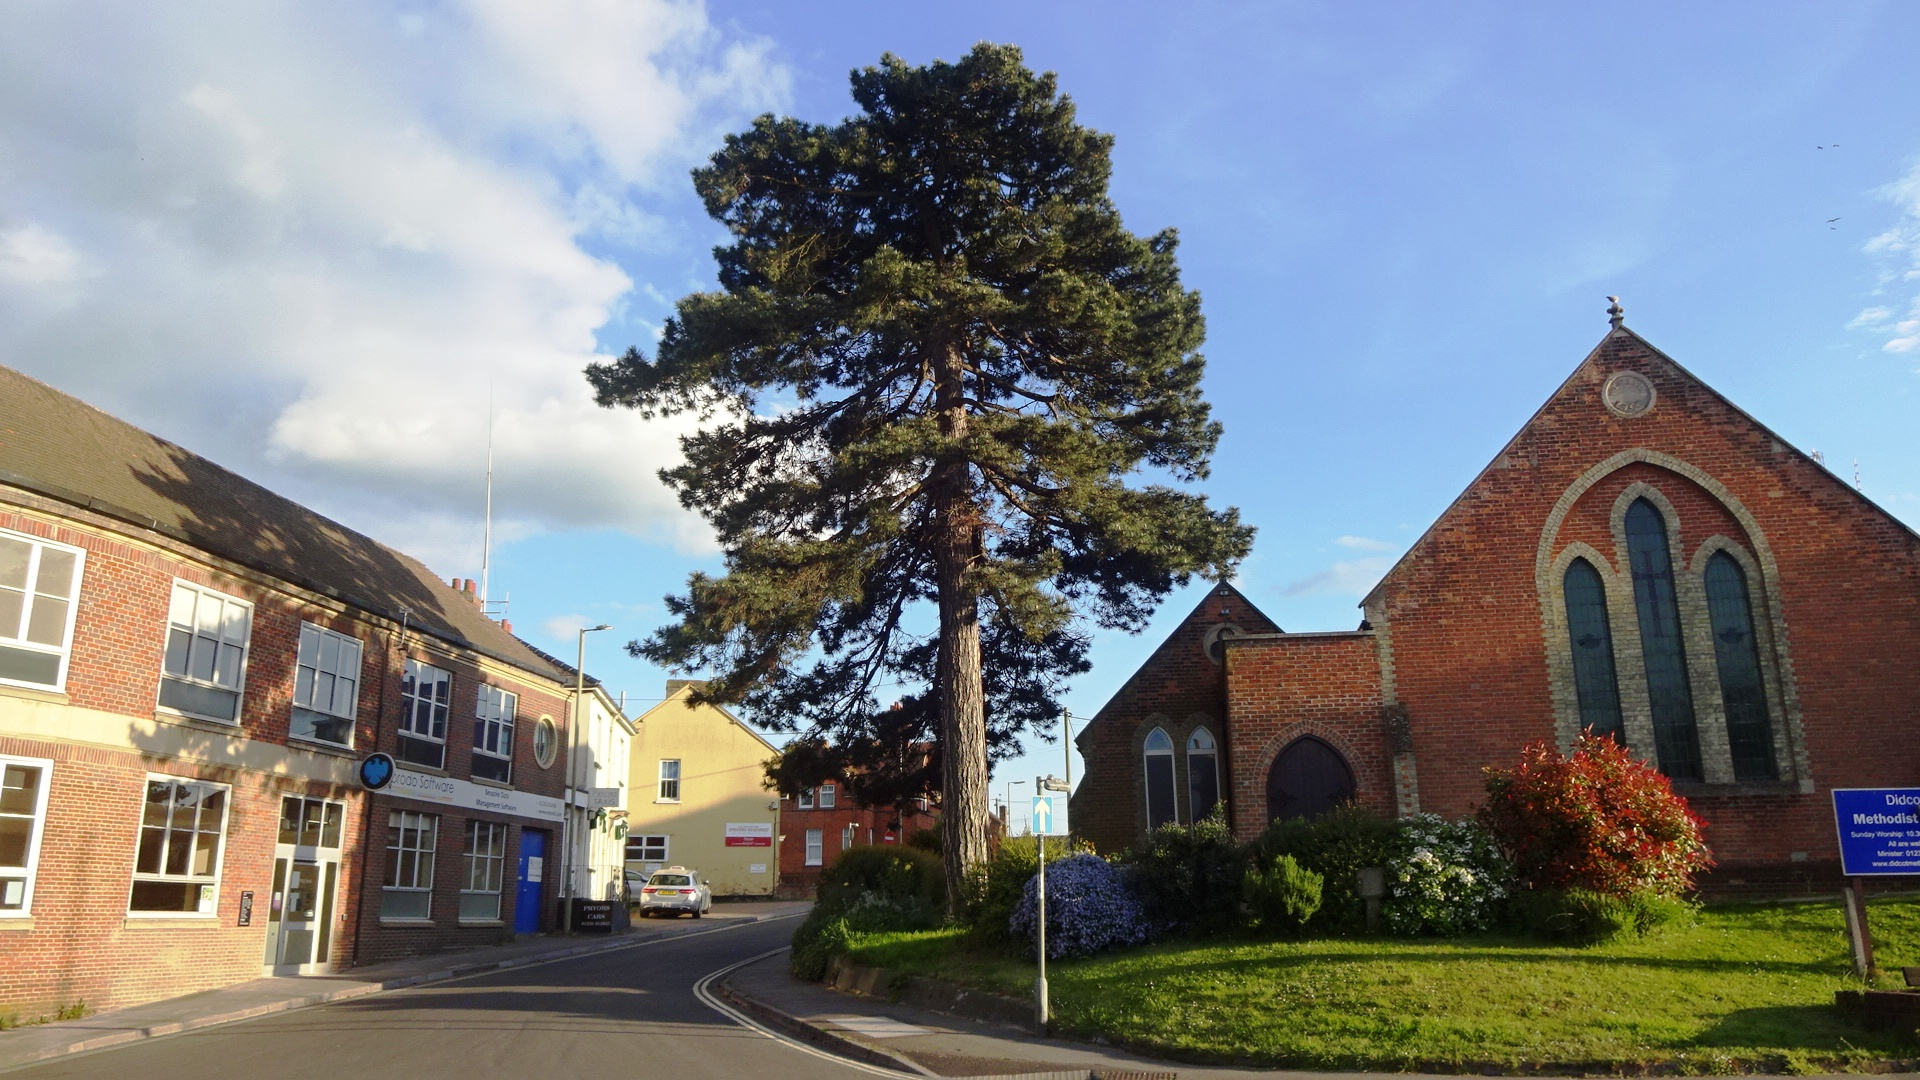 Corsican pine, Methodist Church. Image by Geoff Bushell.